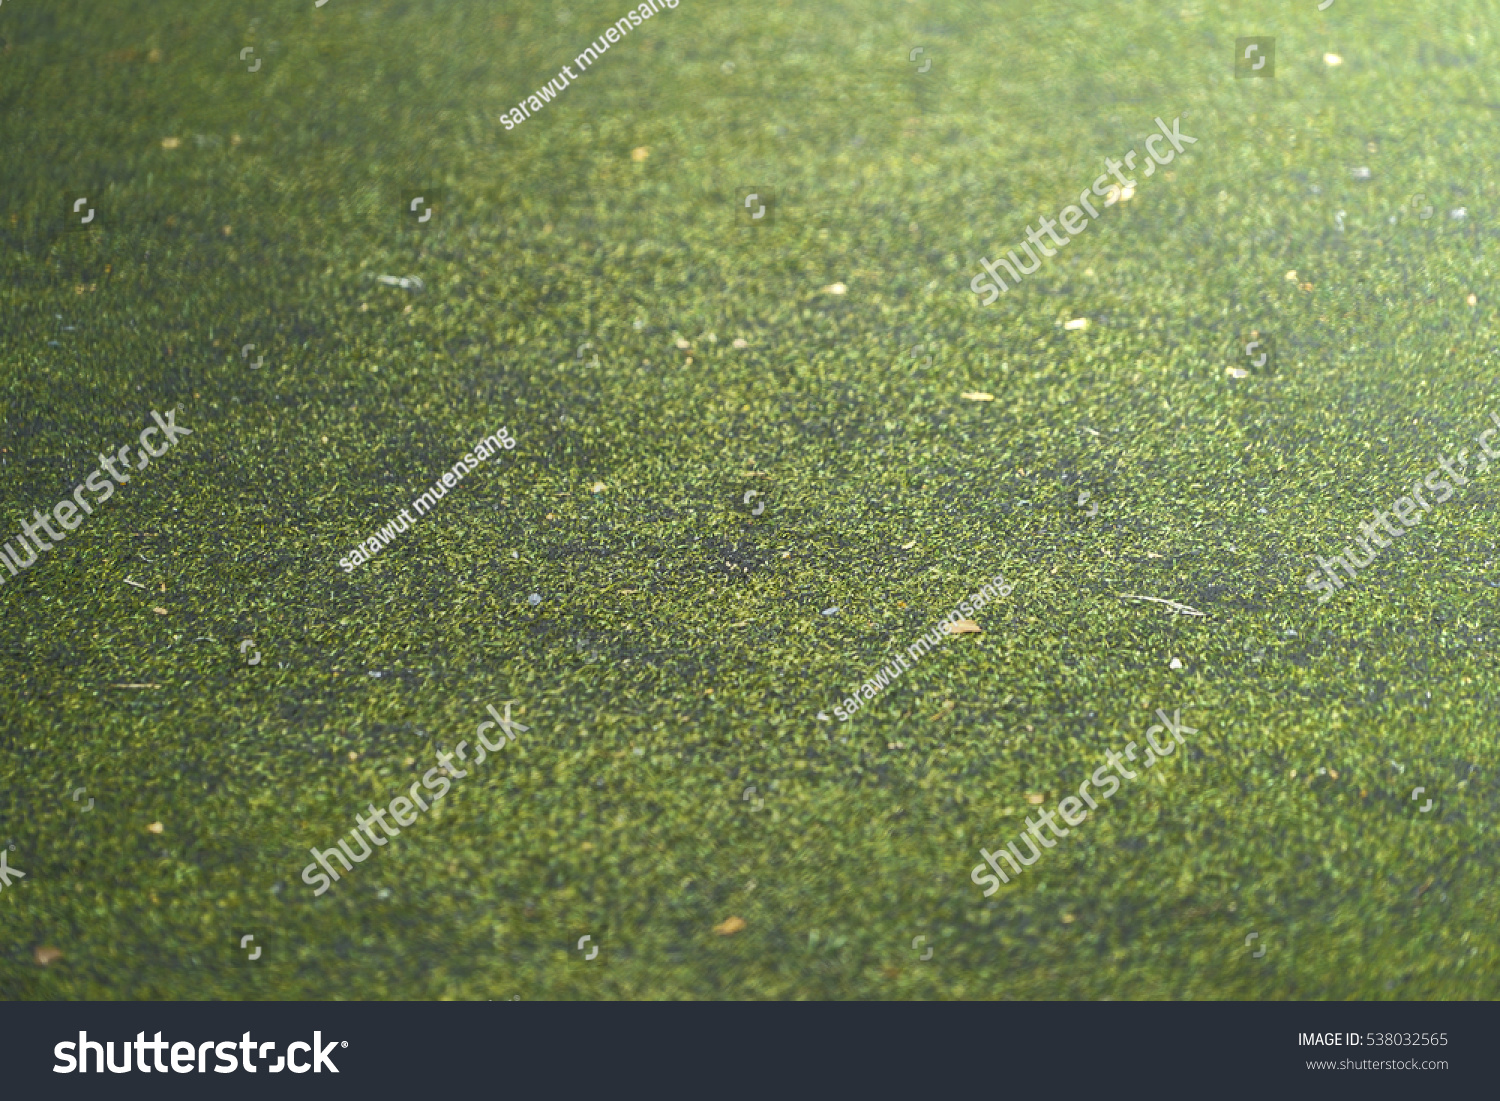 Artificial grass background.